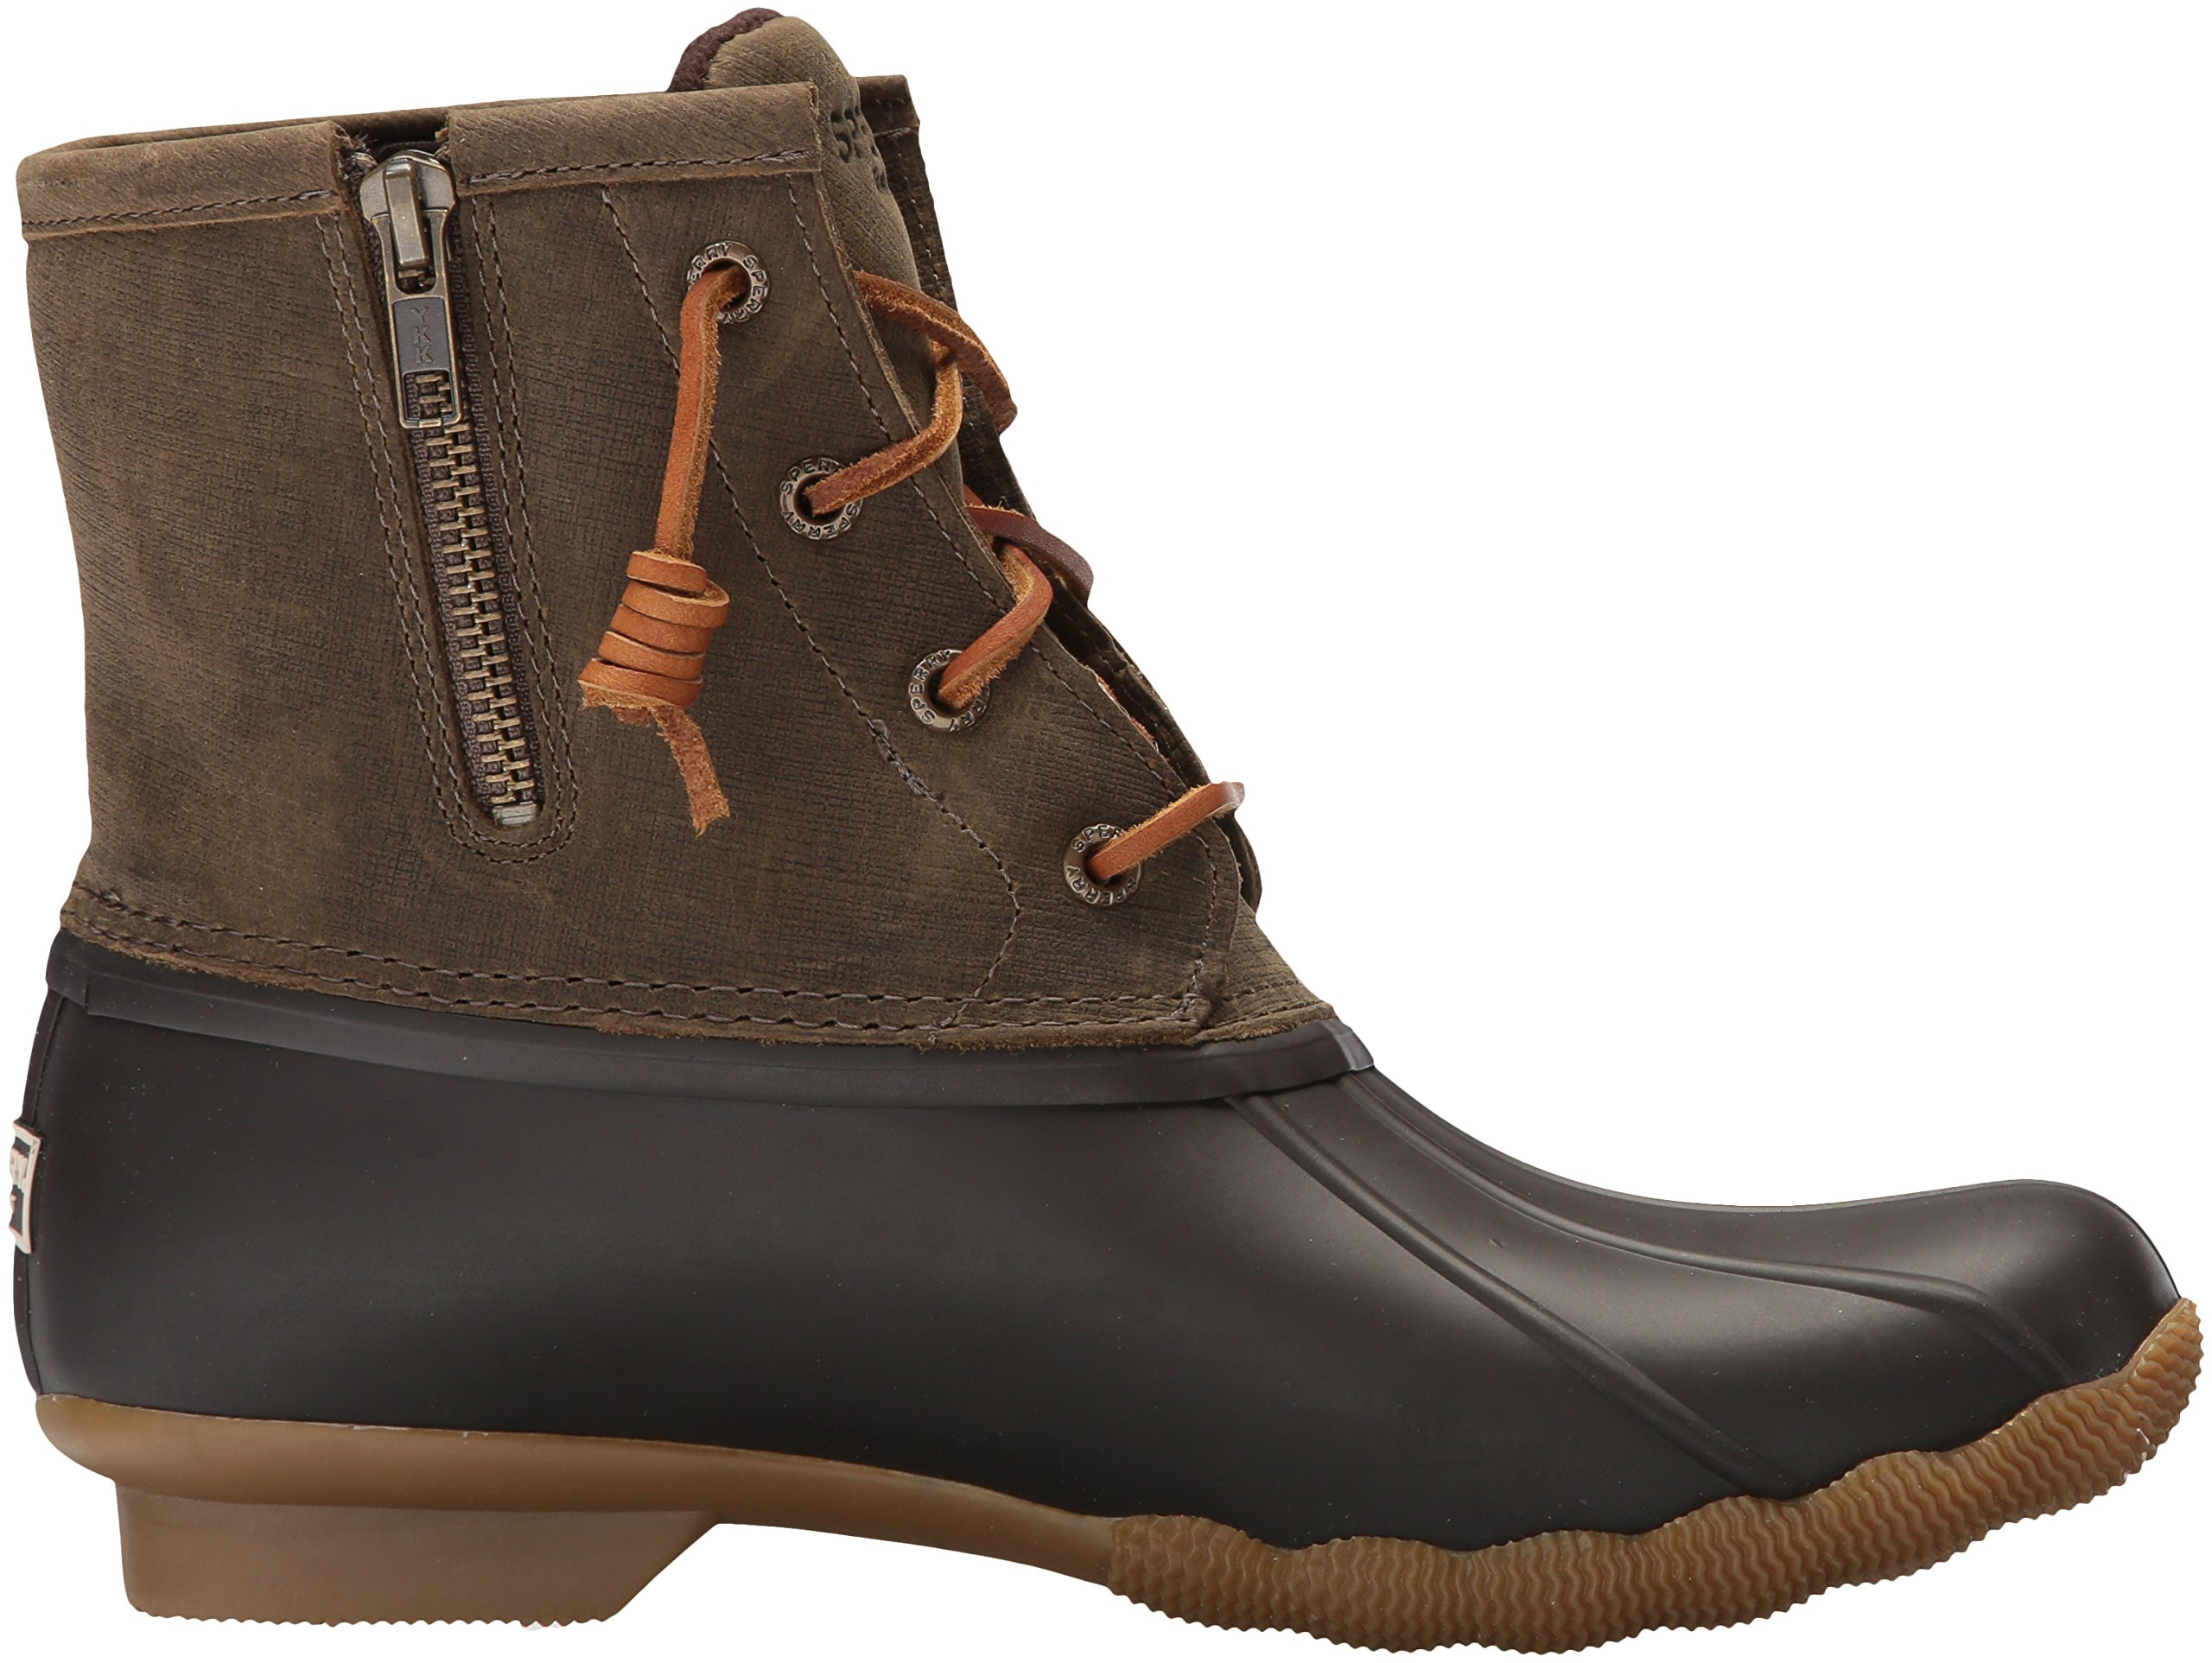 Sperry Top-Sider Women's Saltwater Rain Boot, Brown/Olive, 11 Medium US by Sperry Top-Sider (Image #7)